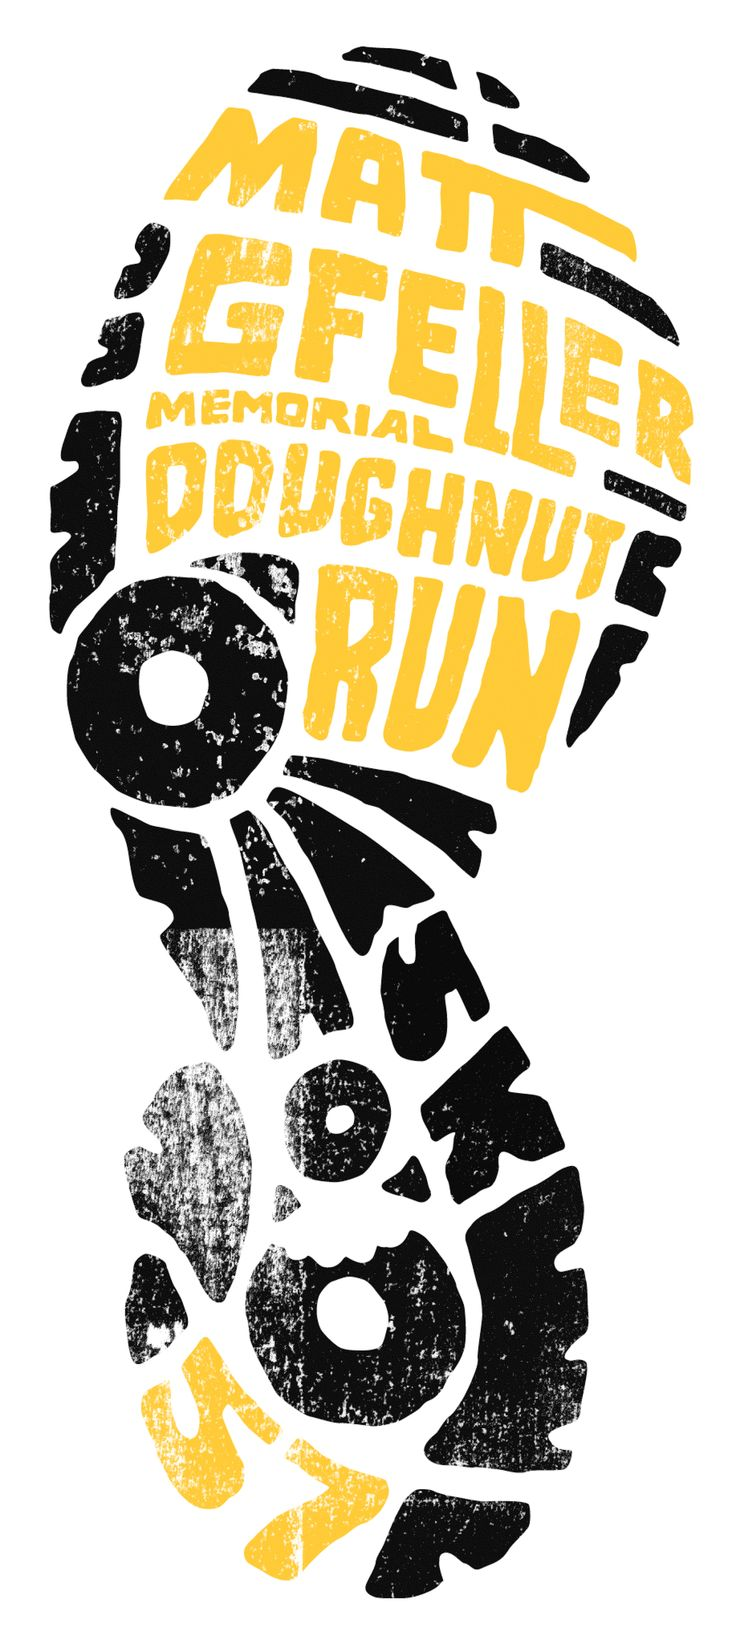 Fun run logo, design by Brady Tyler http://brady-tyler.com/about/portfolio/